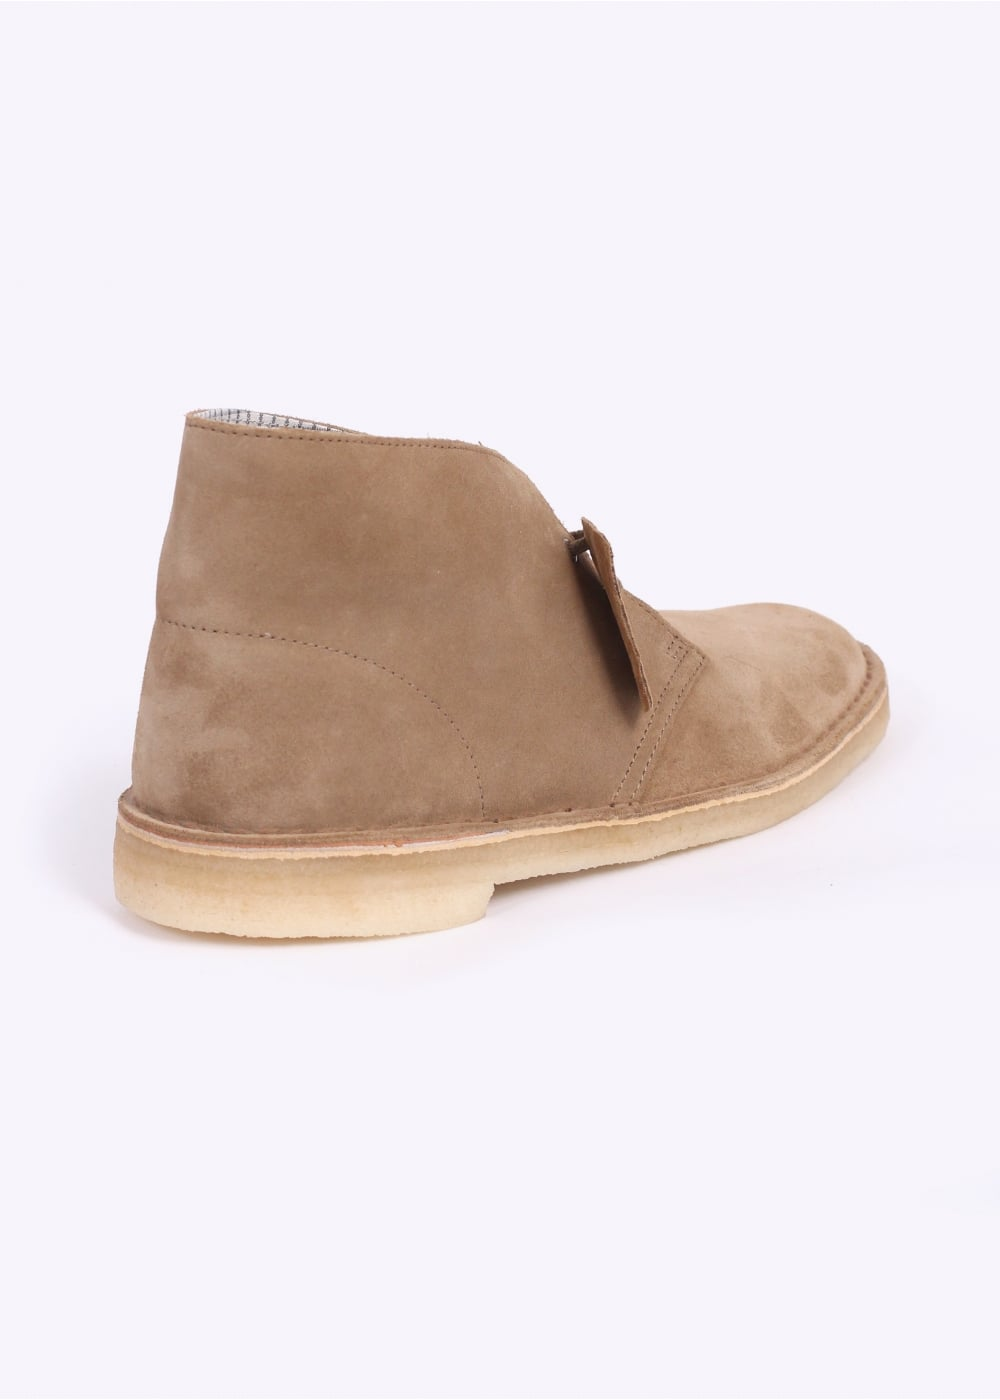 clarks originals suede desert boot oakwood